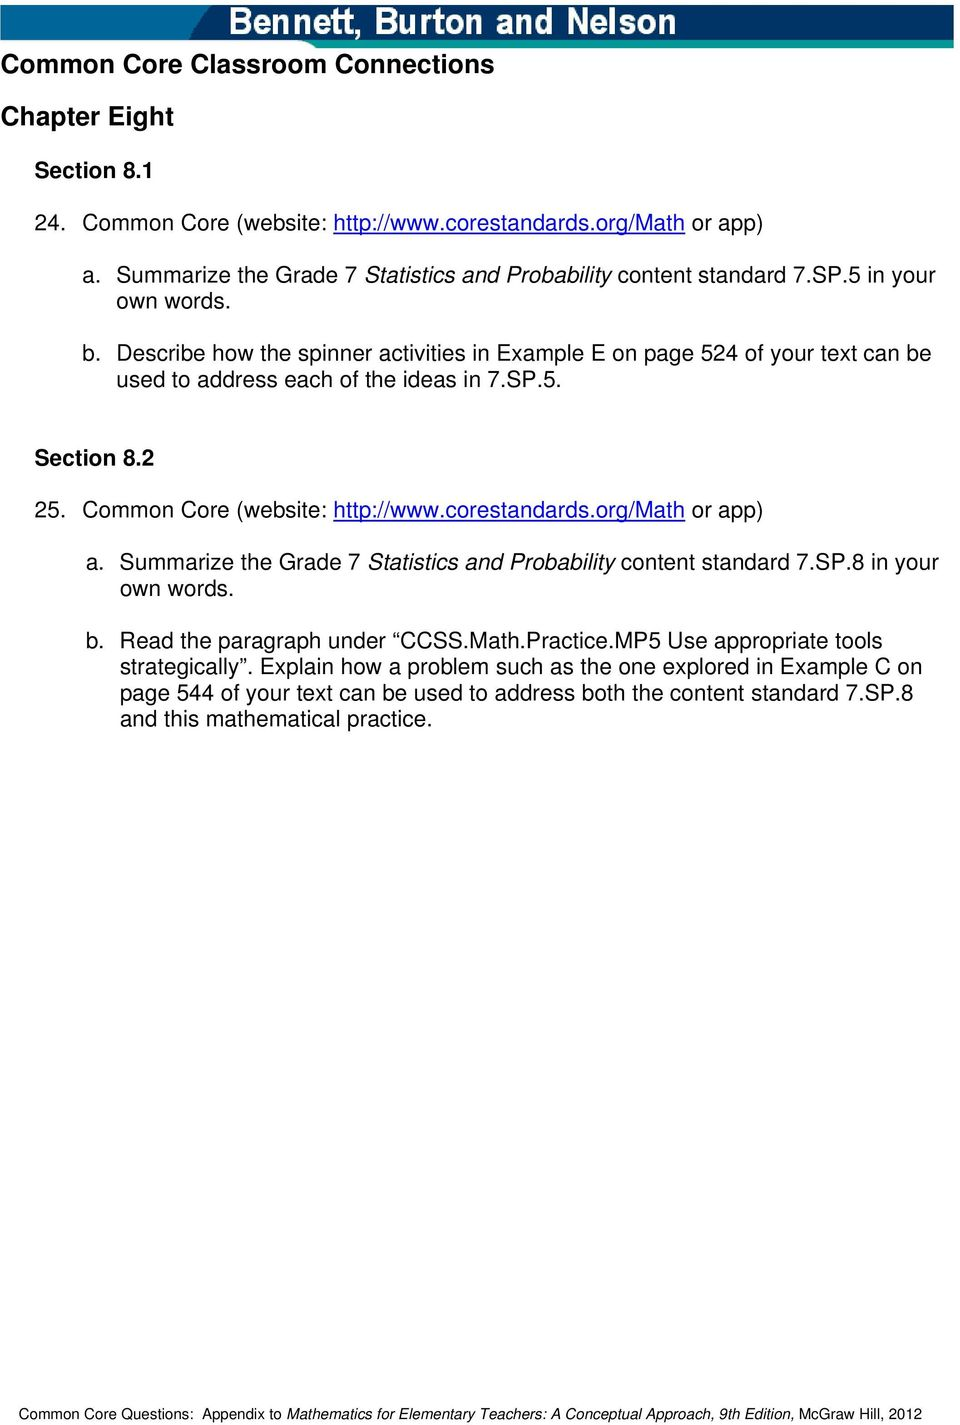 corestandards.org/math or app) a. Summarize the Grade 7 Statistics and Probability content standard 7.SP.8 in your own words. b. Read the paragraph under CCSS.Math.Practice.